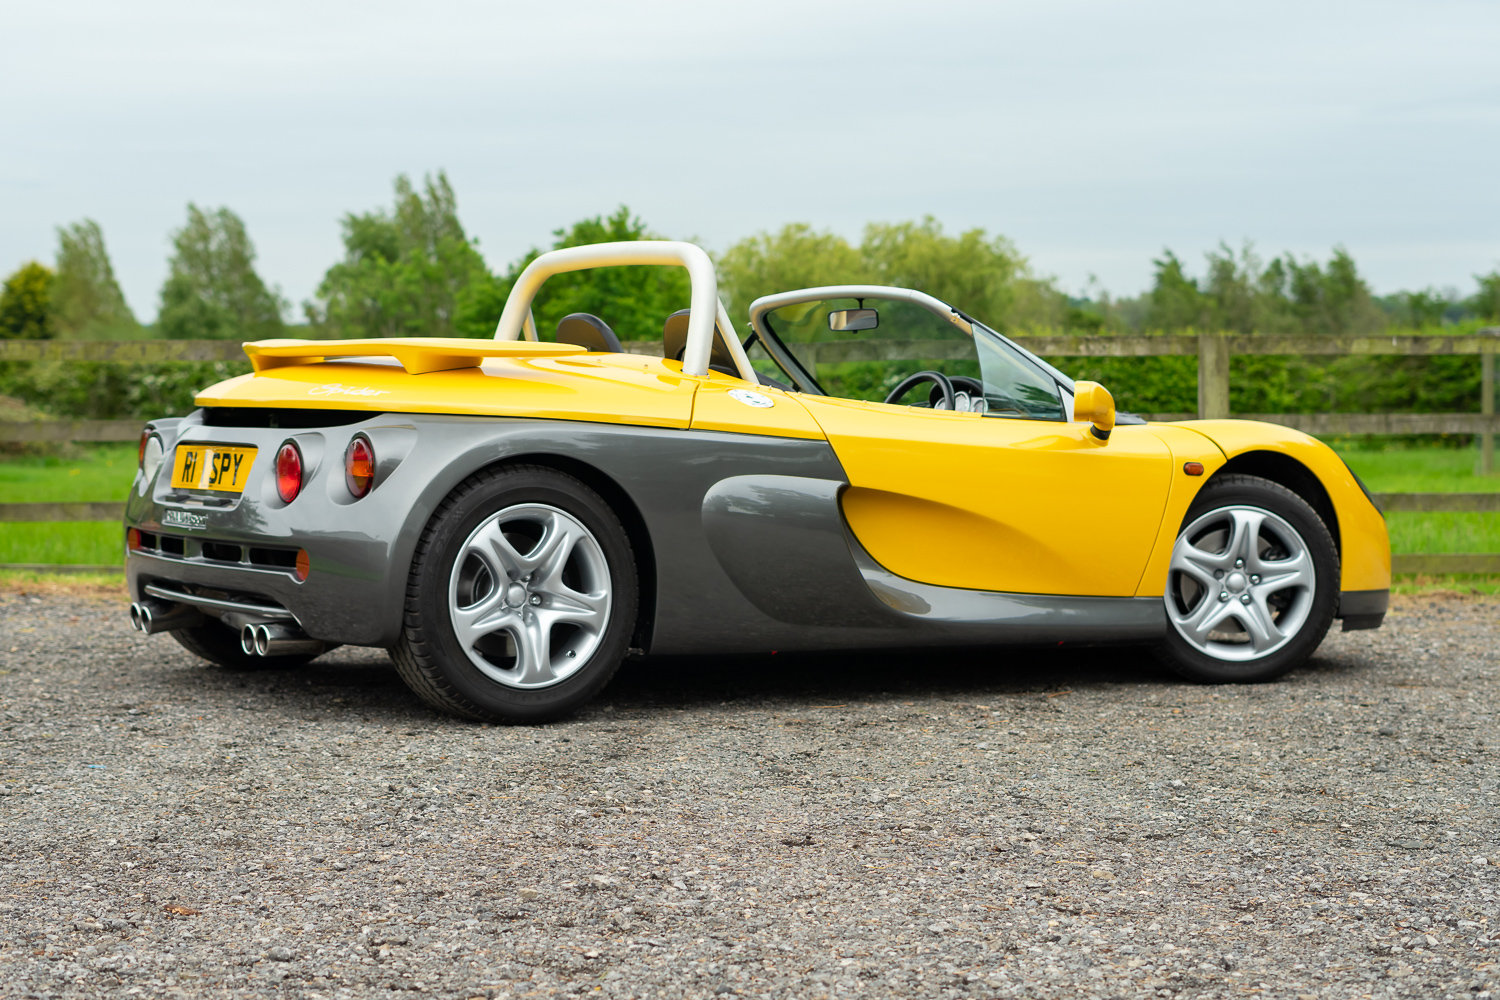 1998 Renault Sport Spider For Sale (picture 3 of 6)